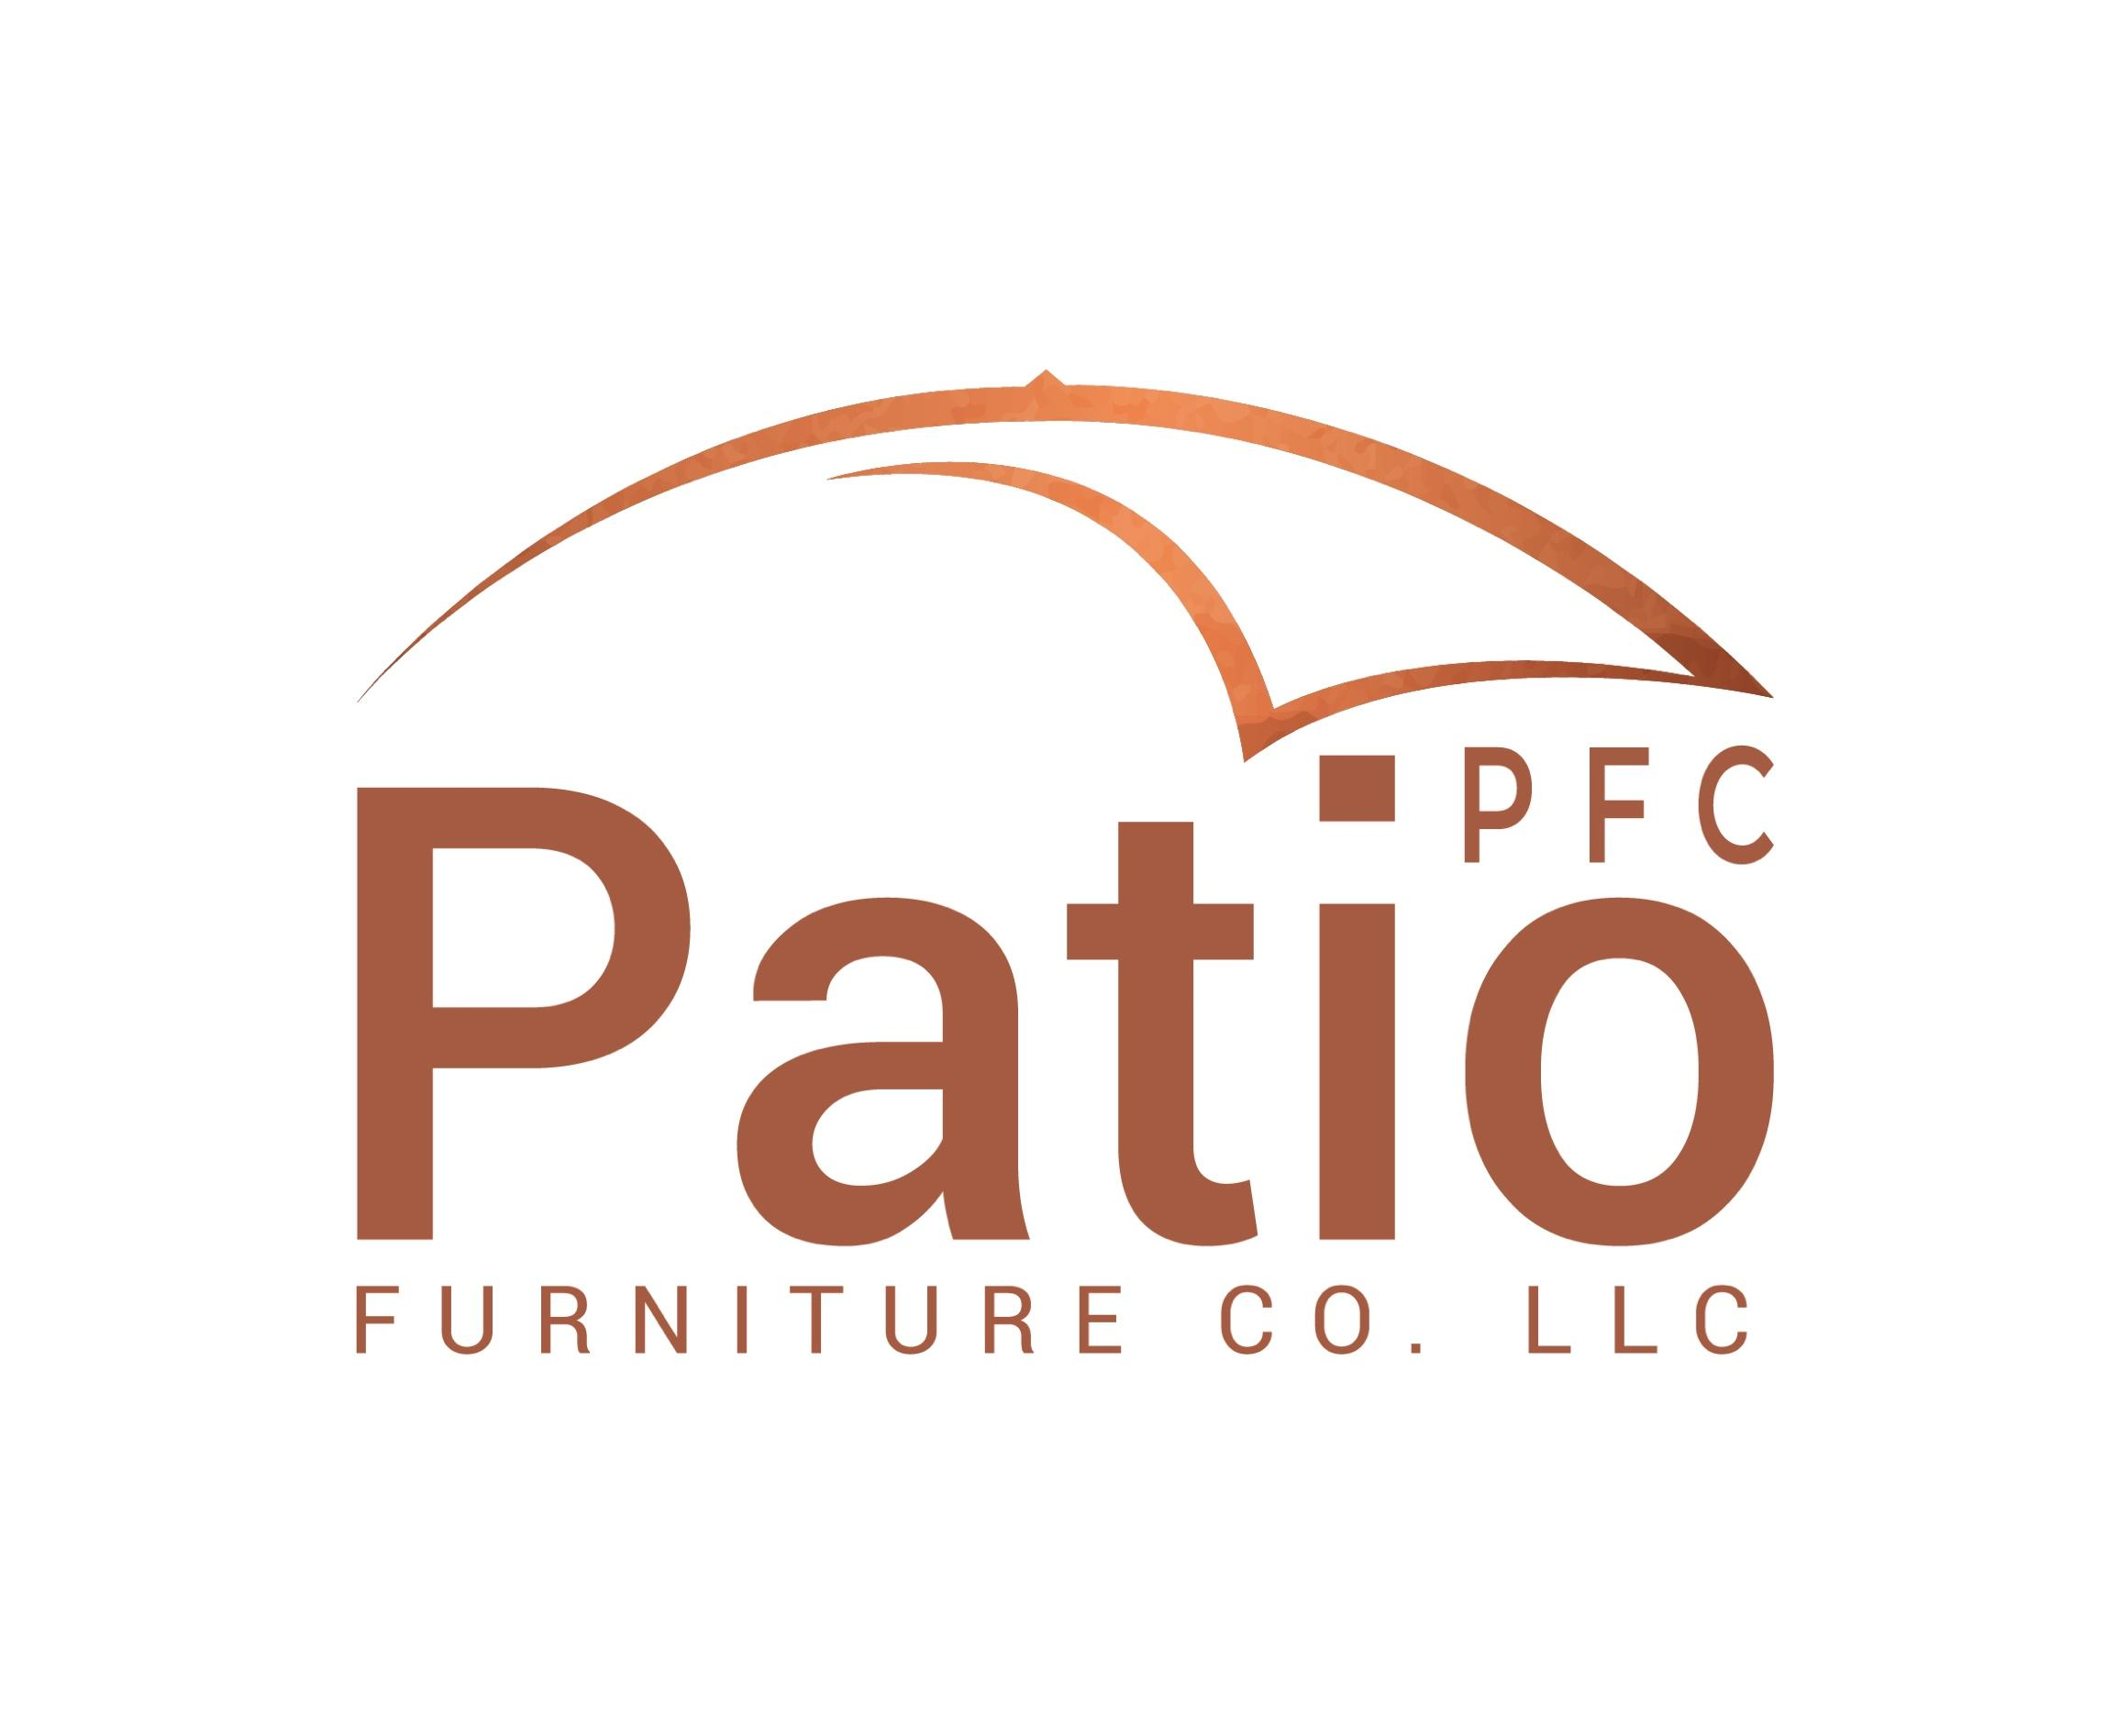 Patio Furniture Co